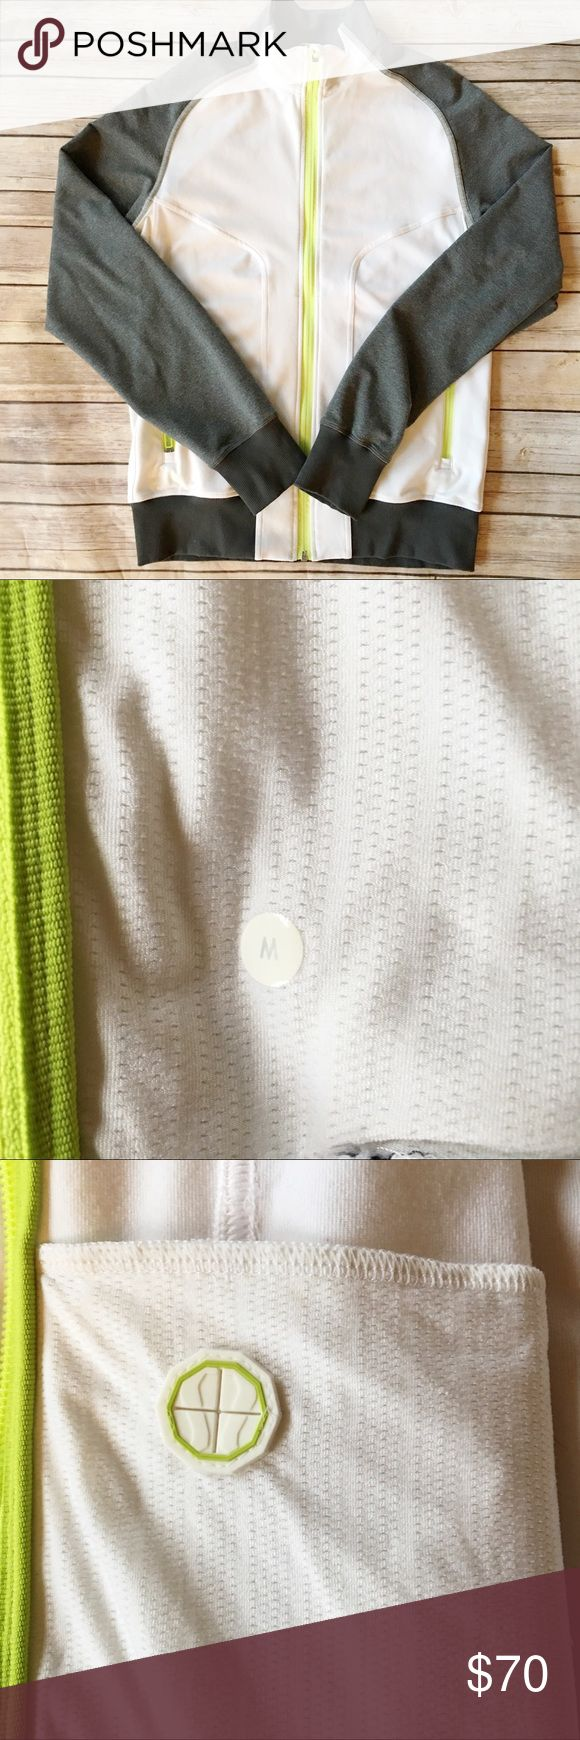 Men's Lululemon Track Jacket Excellent used condition no flaws. Bright lime green, white and gray colors. Mesh under arms, two front zipper pockets and two inside mesh pockets. Right pocket has headphone cord port. lululemon athletica Jackets & Coats